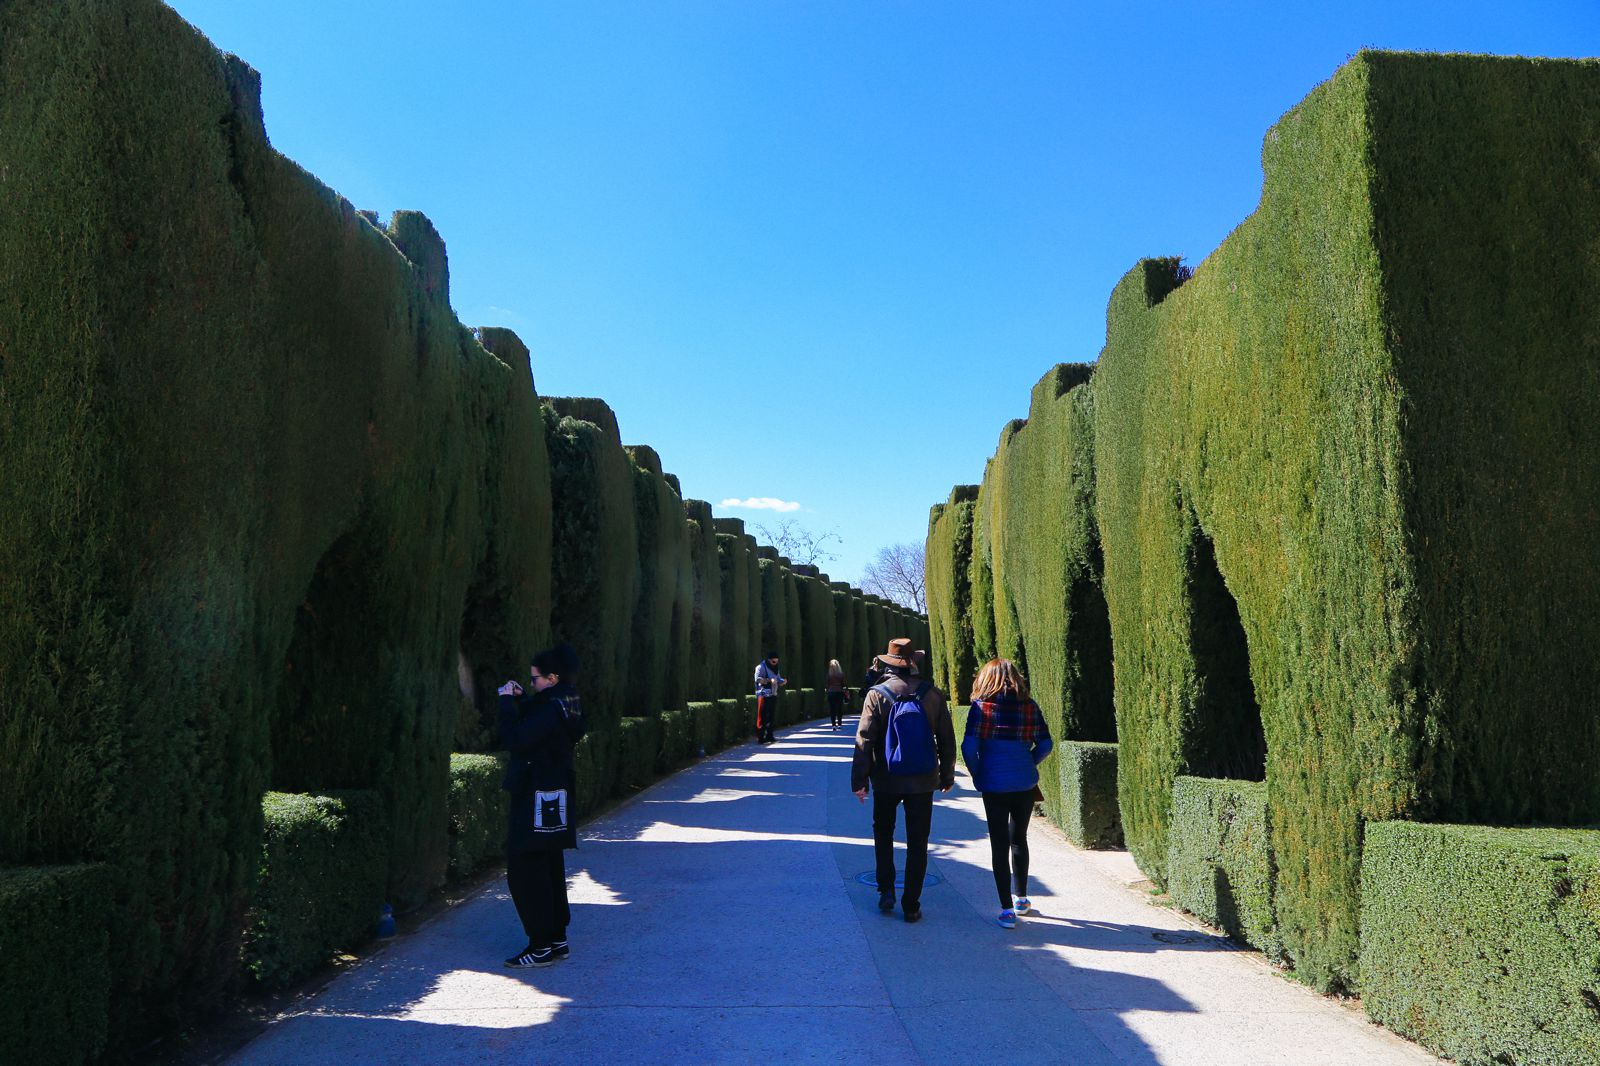 Postcards From Spain - Malaga, Ronda And The Alhambra (13)